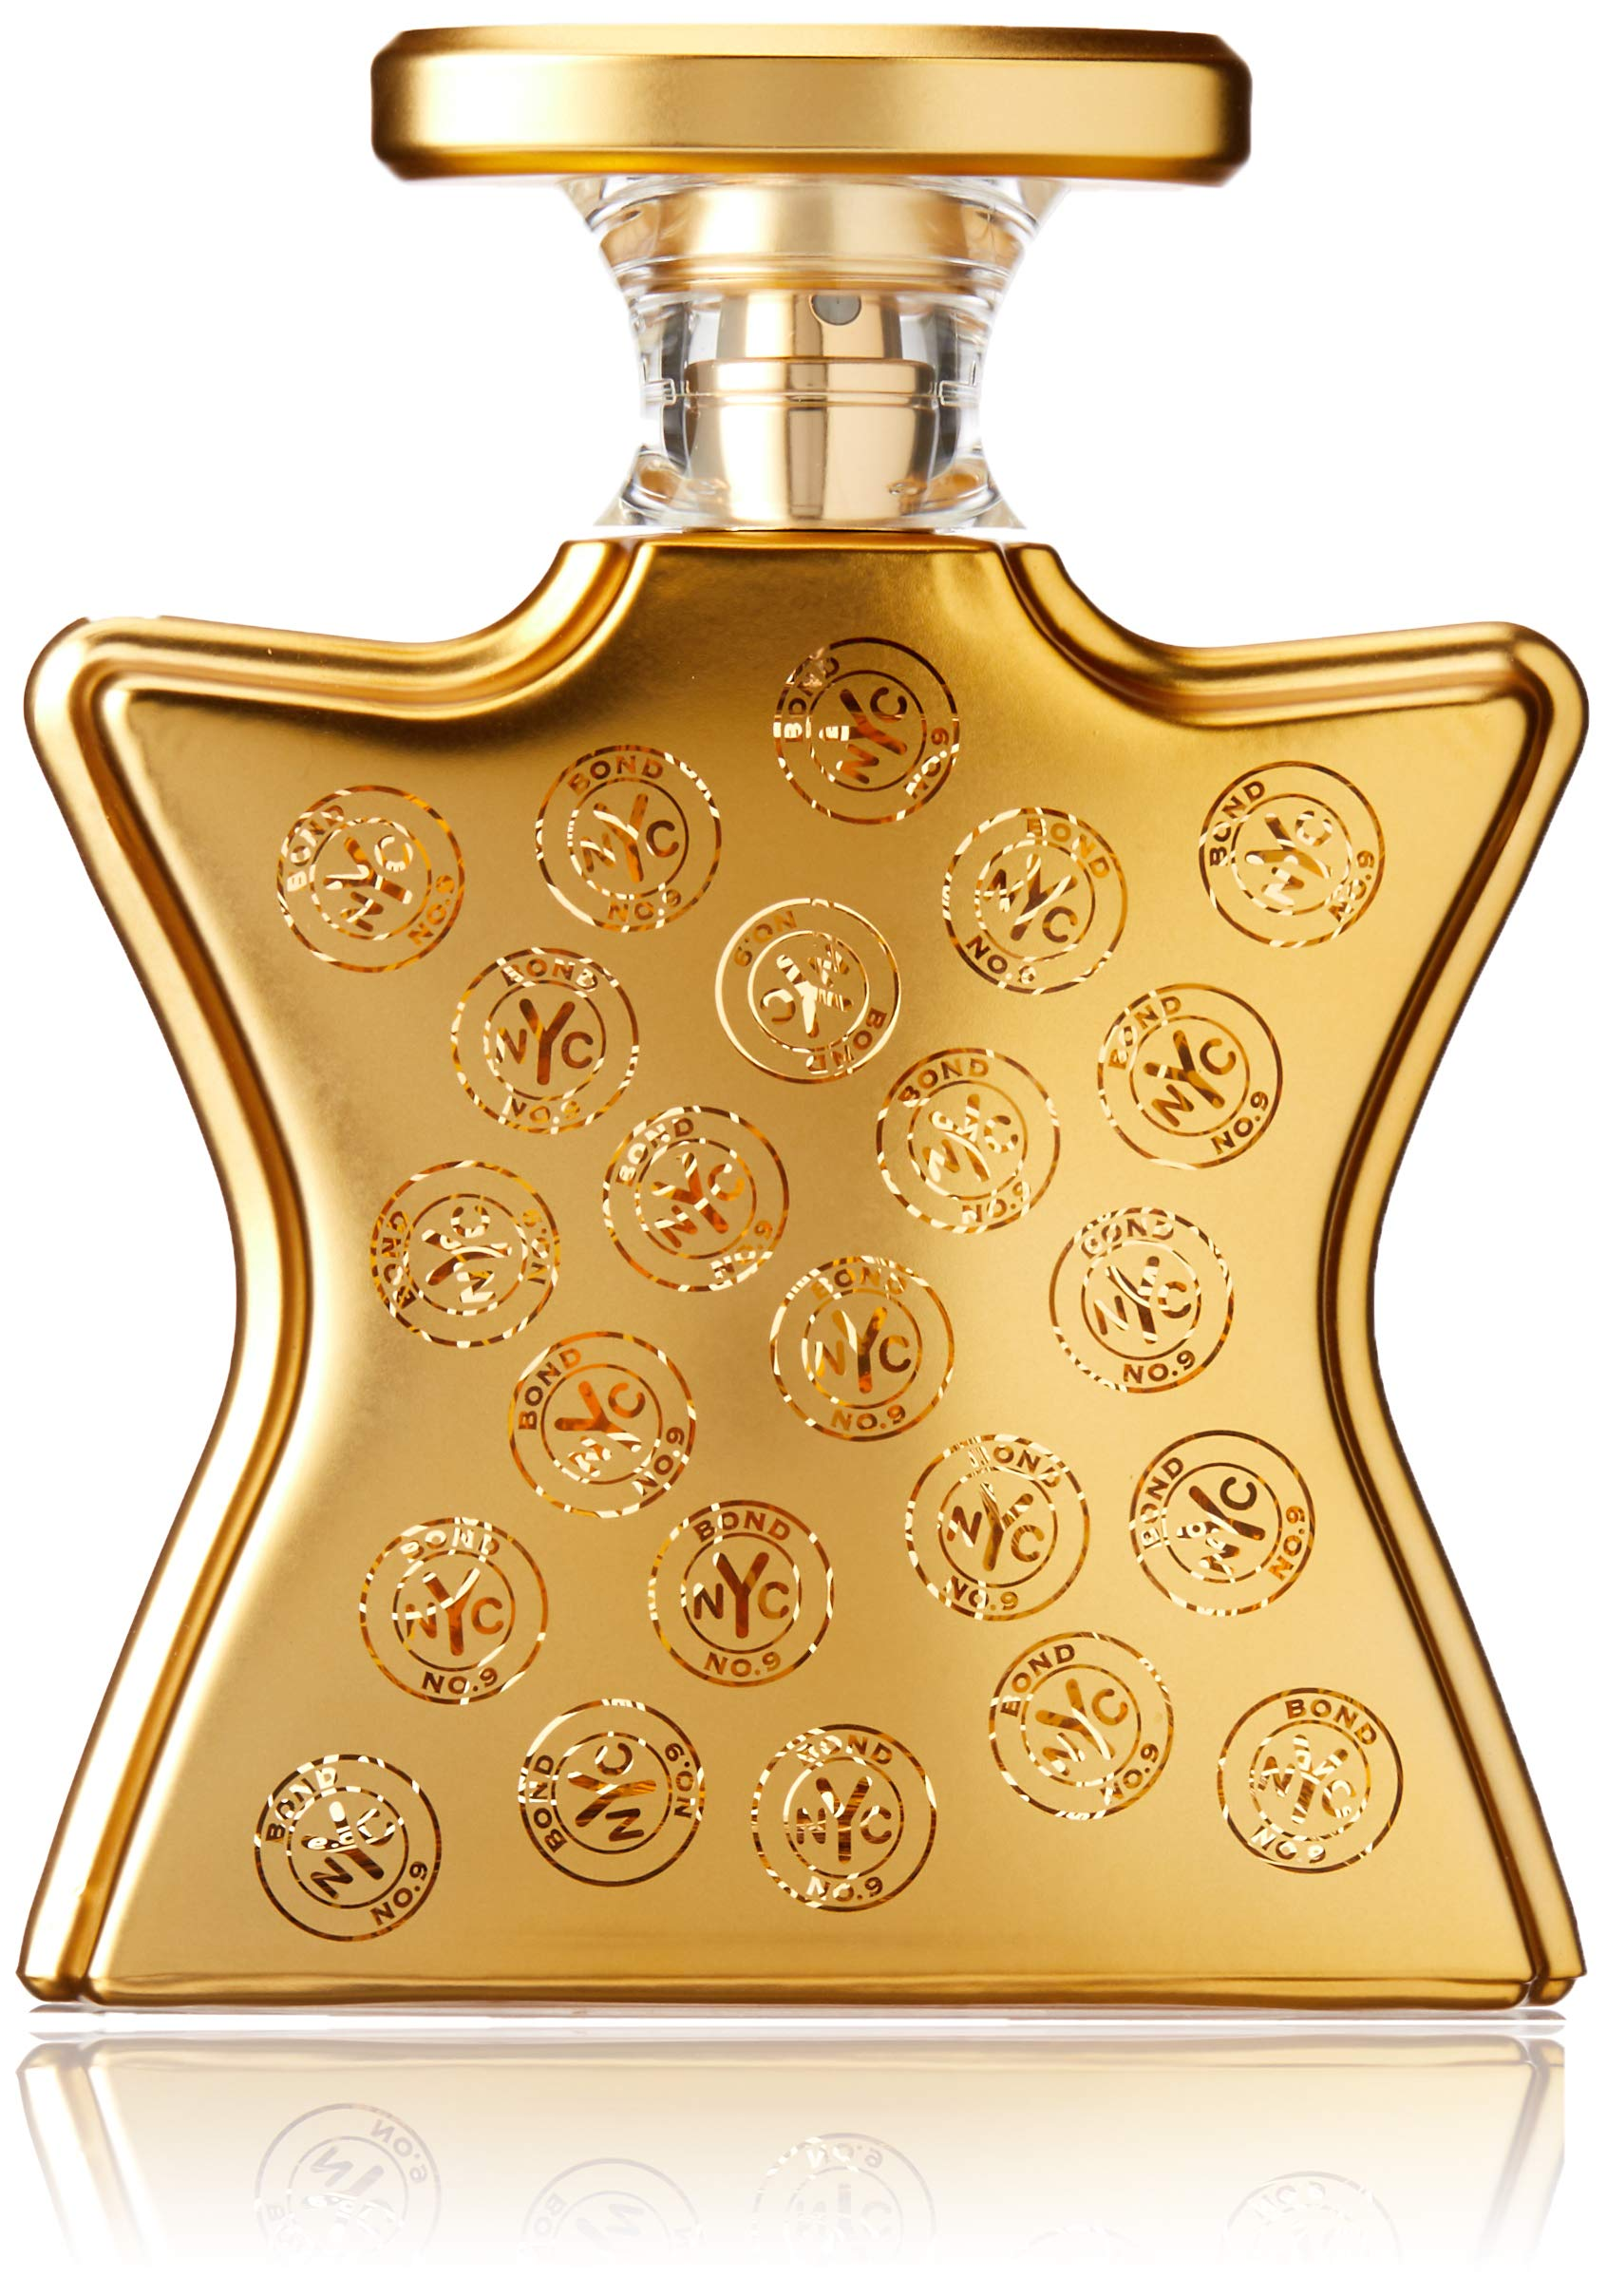 Bond No. 9 New York Signature Eau de Parfum Spray, 3.3 Fluid Ounce